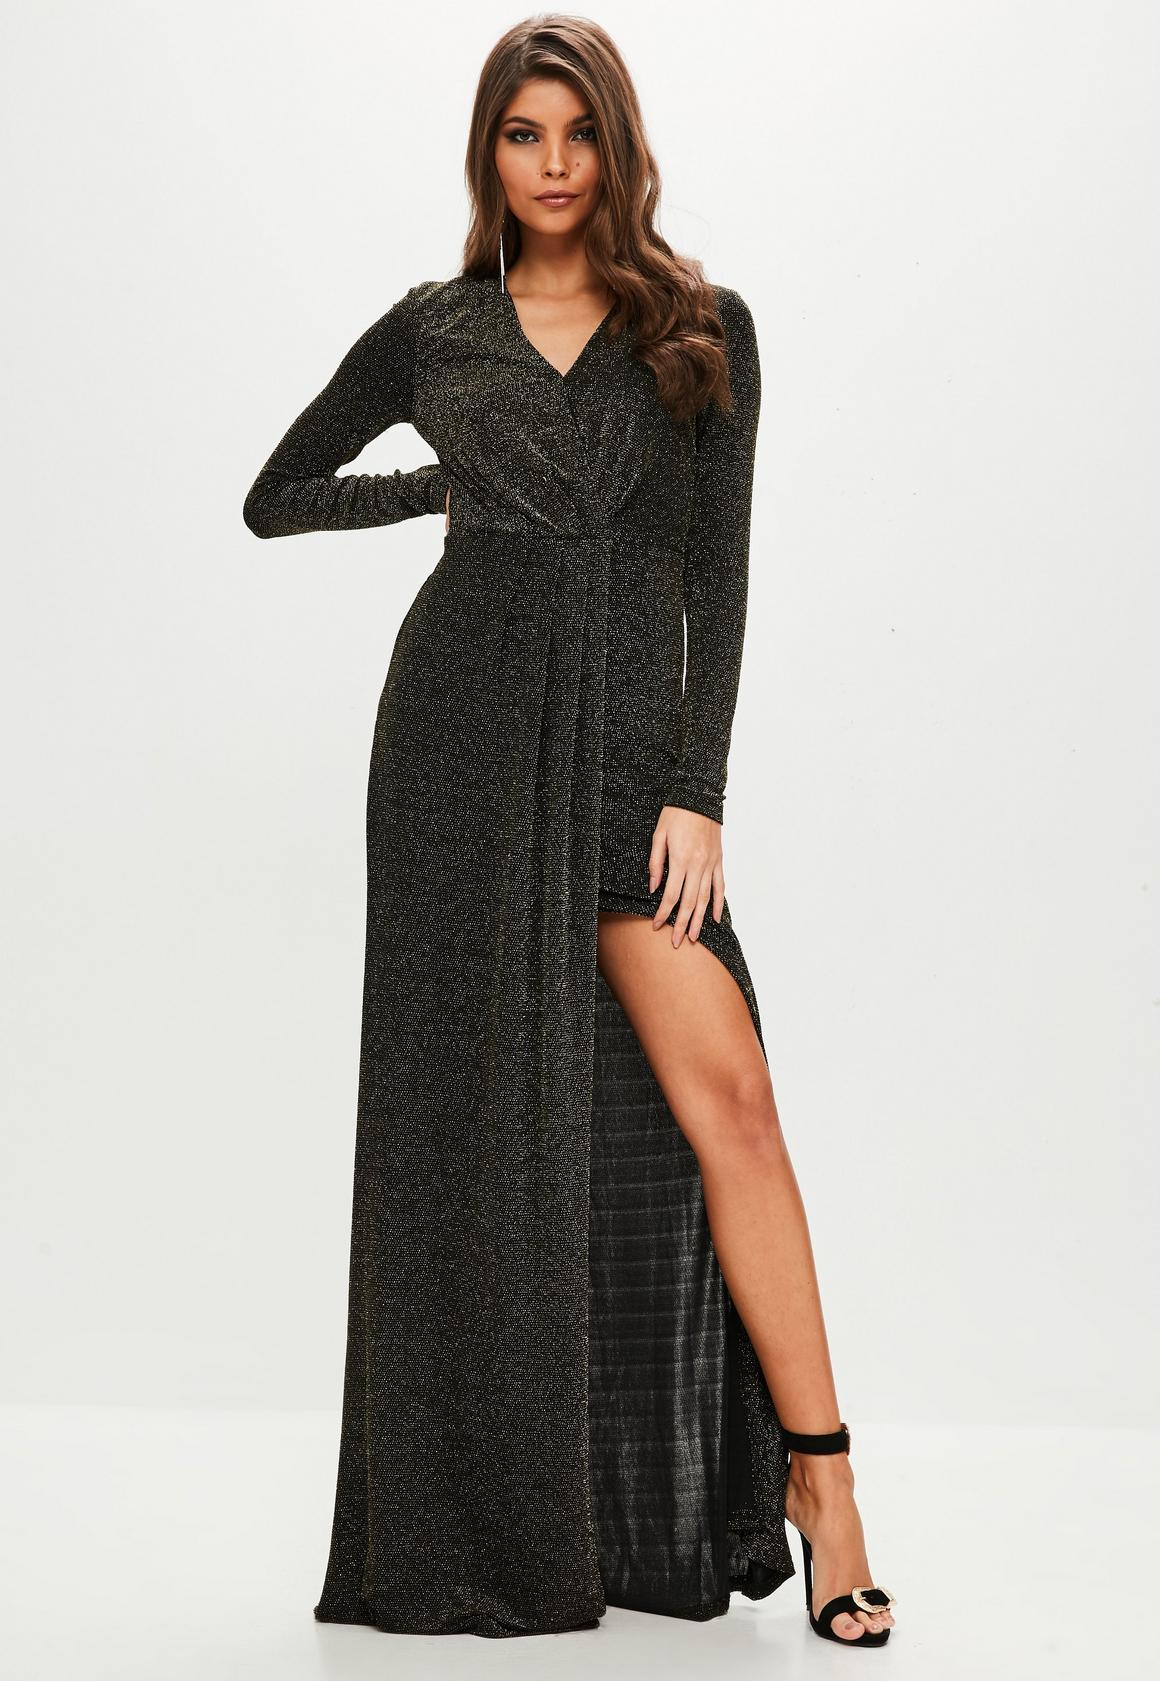 Maxi dresses with full sleeves